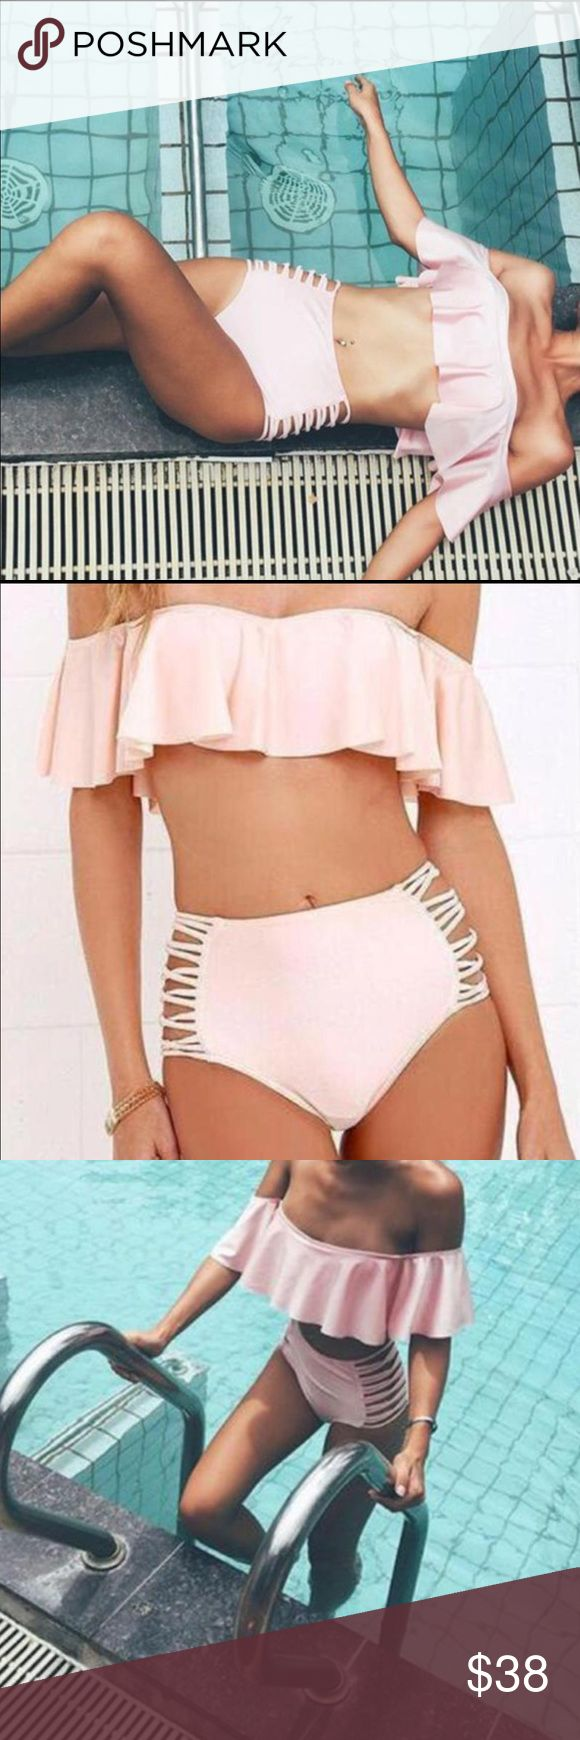 Sydney swimsuitHOST PICK I call her Sydney super cute and chic pastel pink bikini. Two piece high wasted with side cutouts. Ruffle off the shoulder top. New without tags(straight from manufacturer) none Swim Bikinis